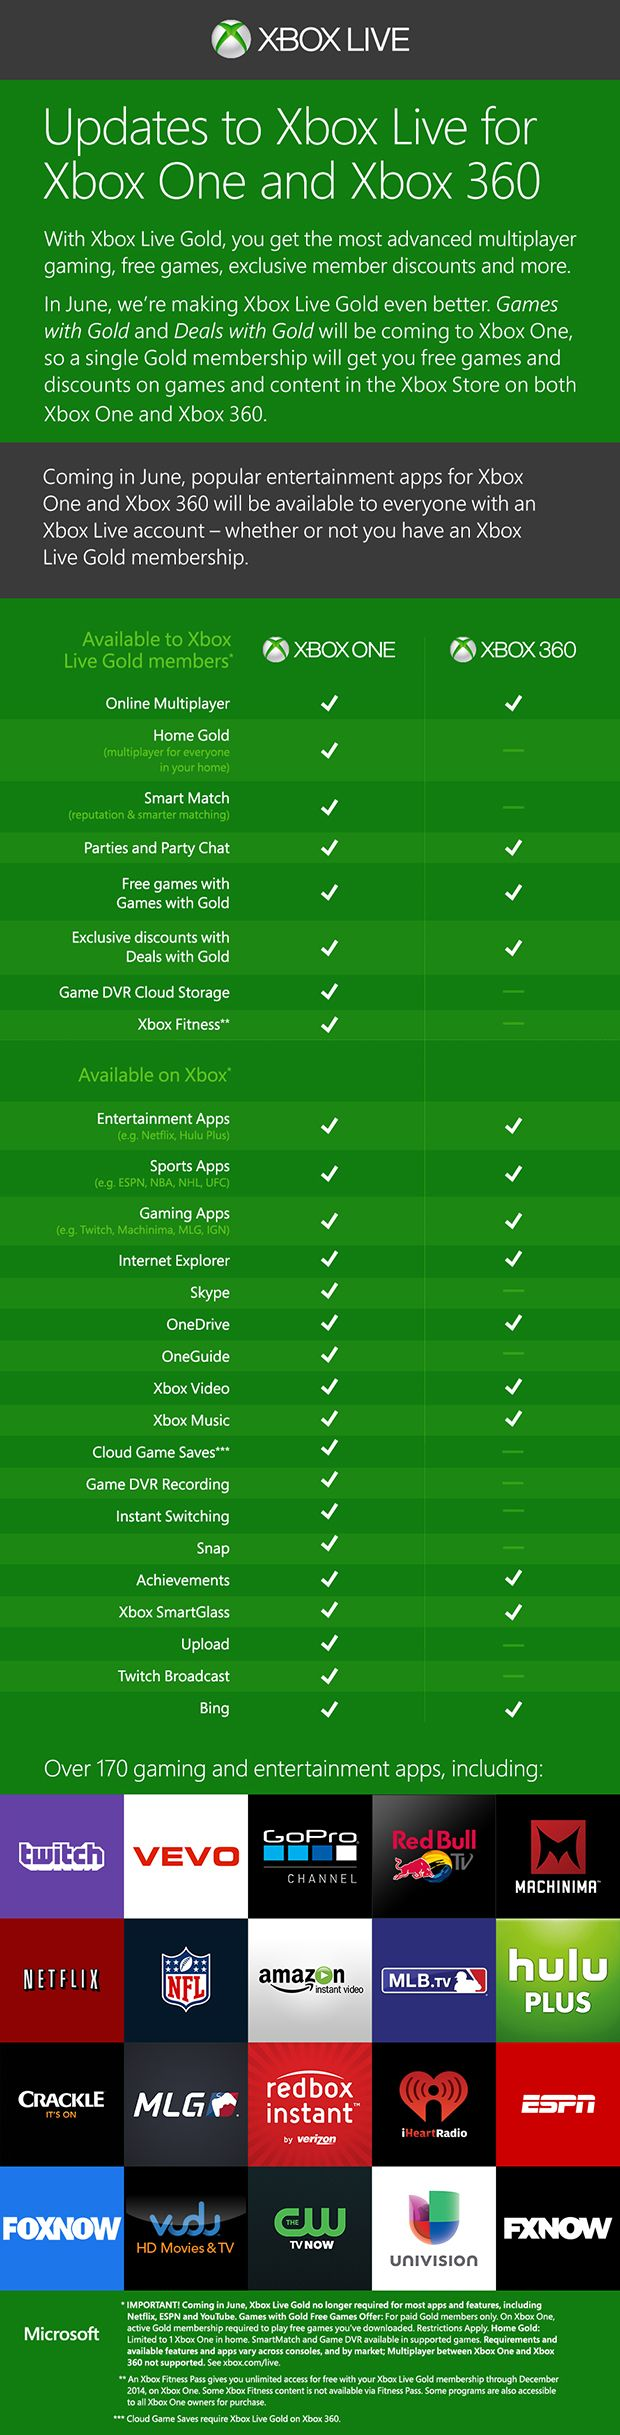 Microsoft lifting Xbox Live Gold restriction for Netflix, Hulu, and other apps • Pureinfotech